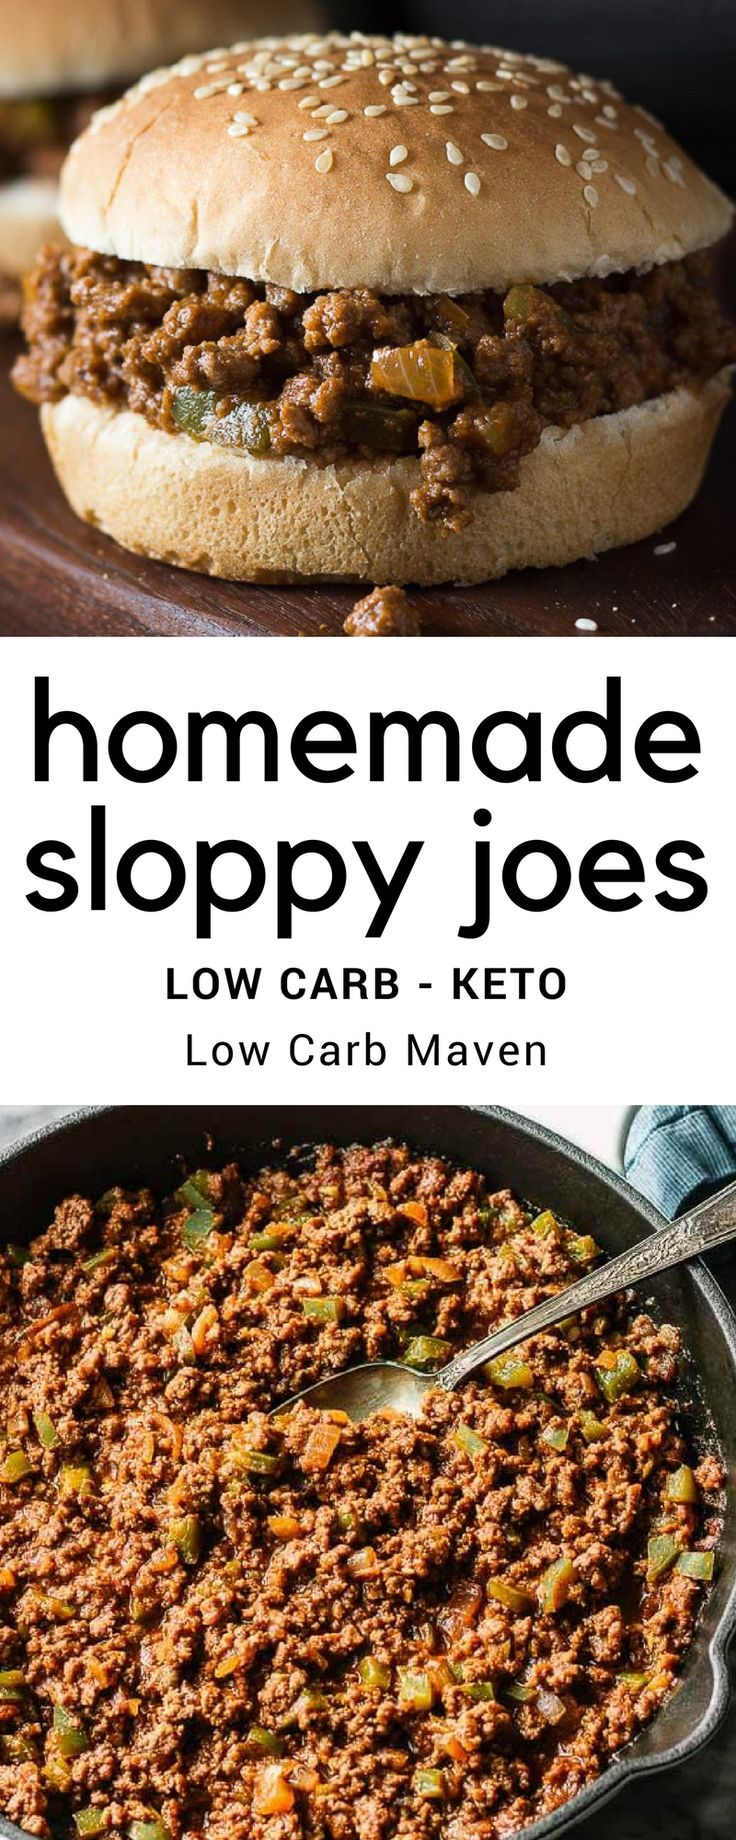 Easy homemade sloppy joes recipe from scratch without ketchup or packers. This recipe is low carb, sugar free and delicious!